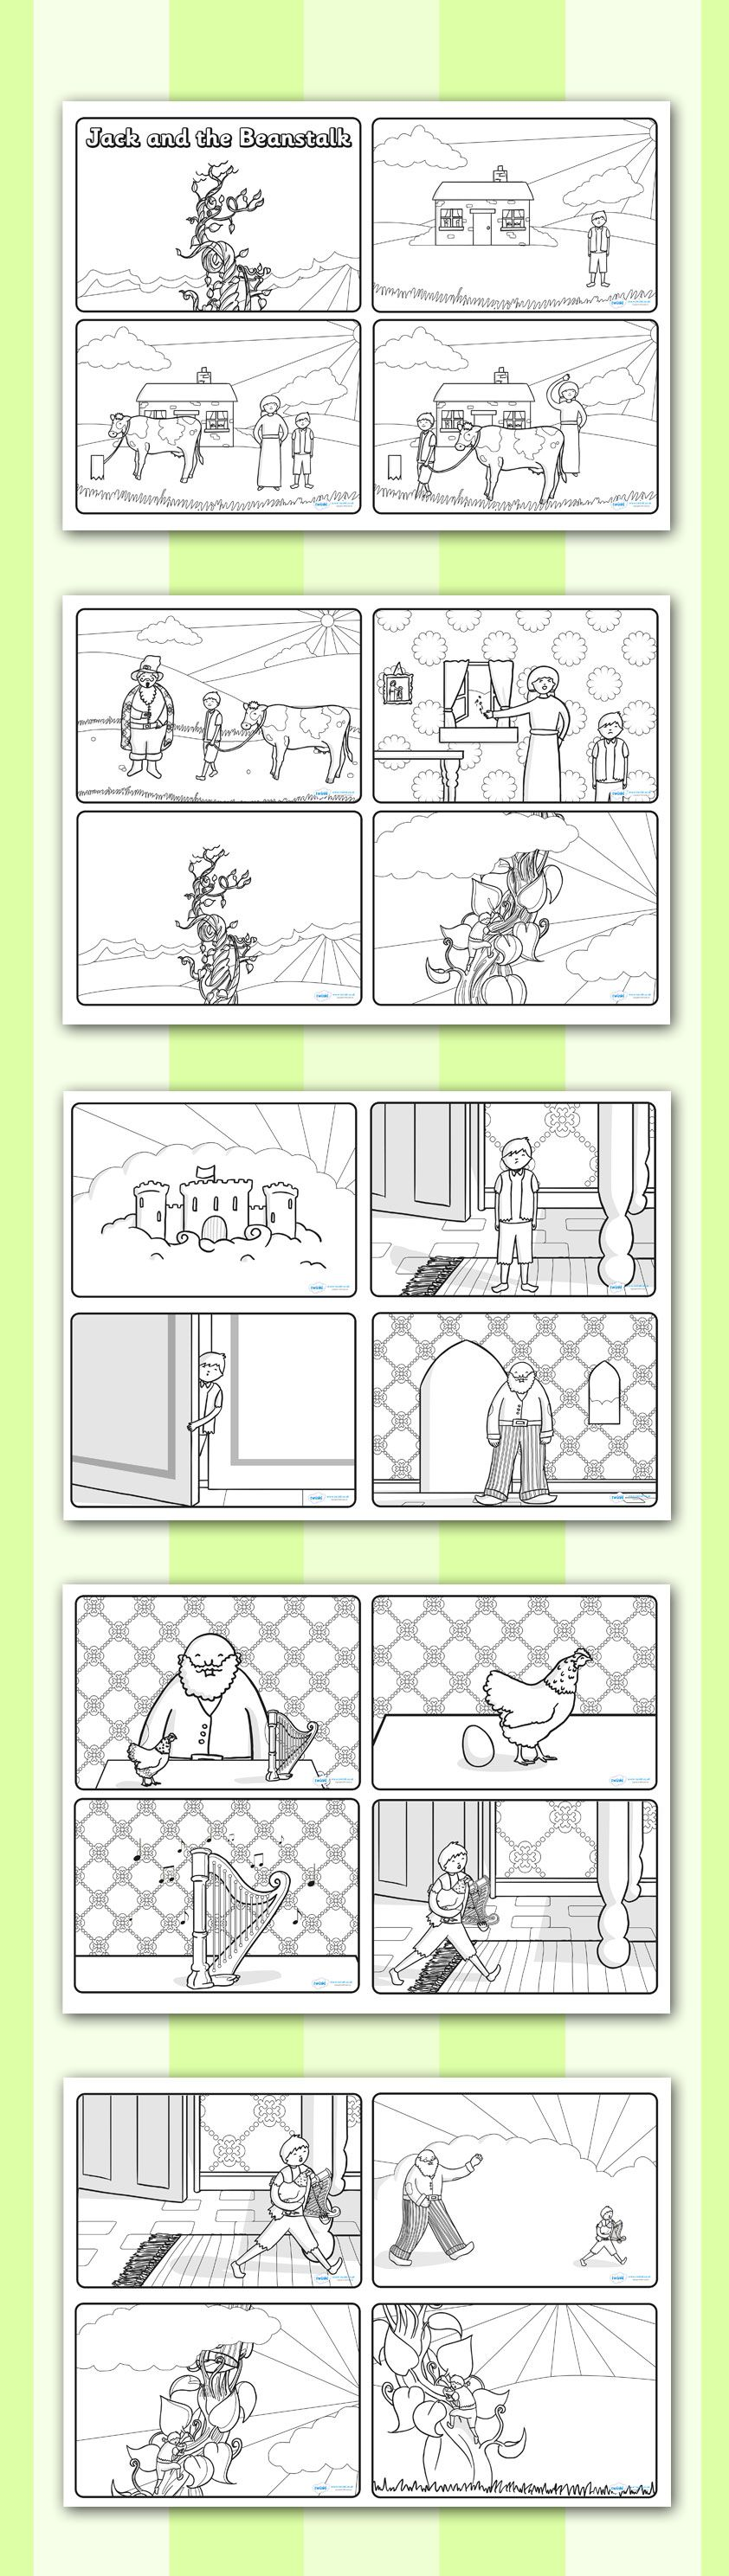 worksheet Jack And The Beanstalk Worksheets jack and the beanstalk story sequencing twinkl resources 4 per a4